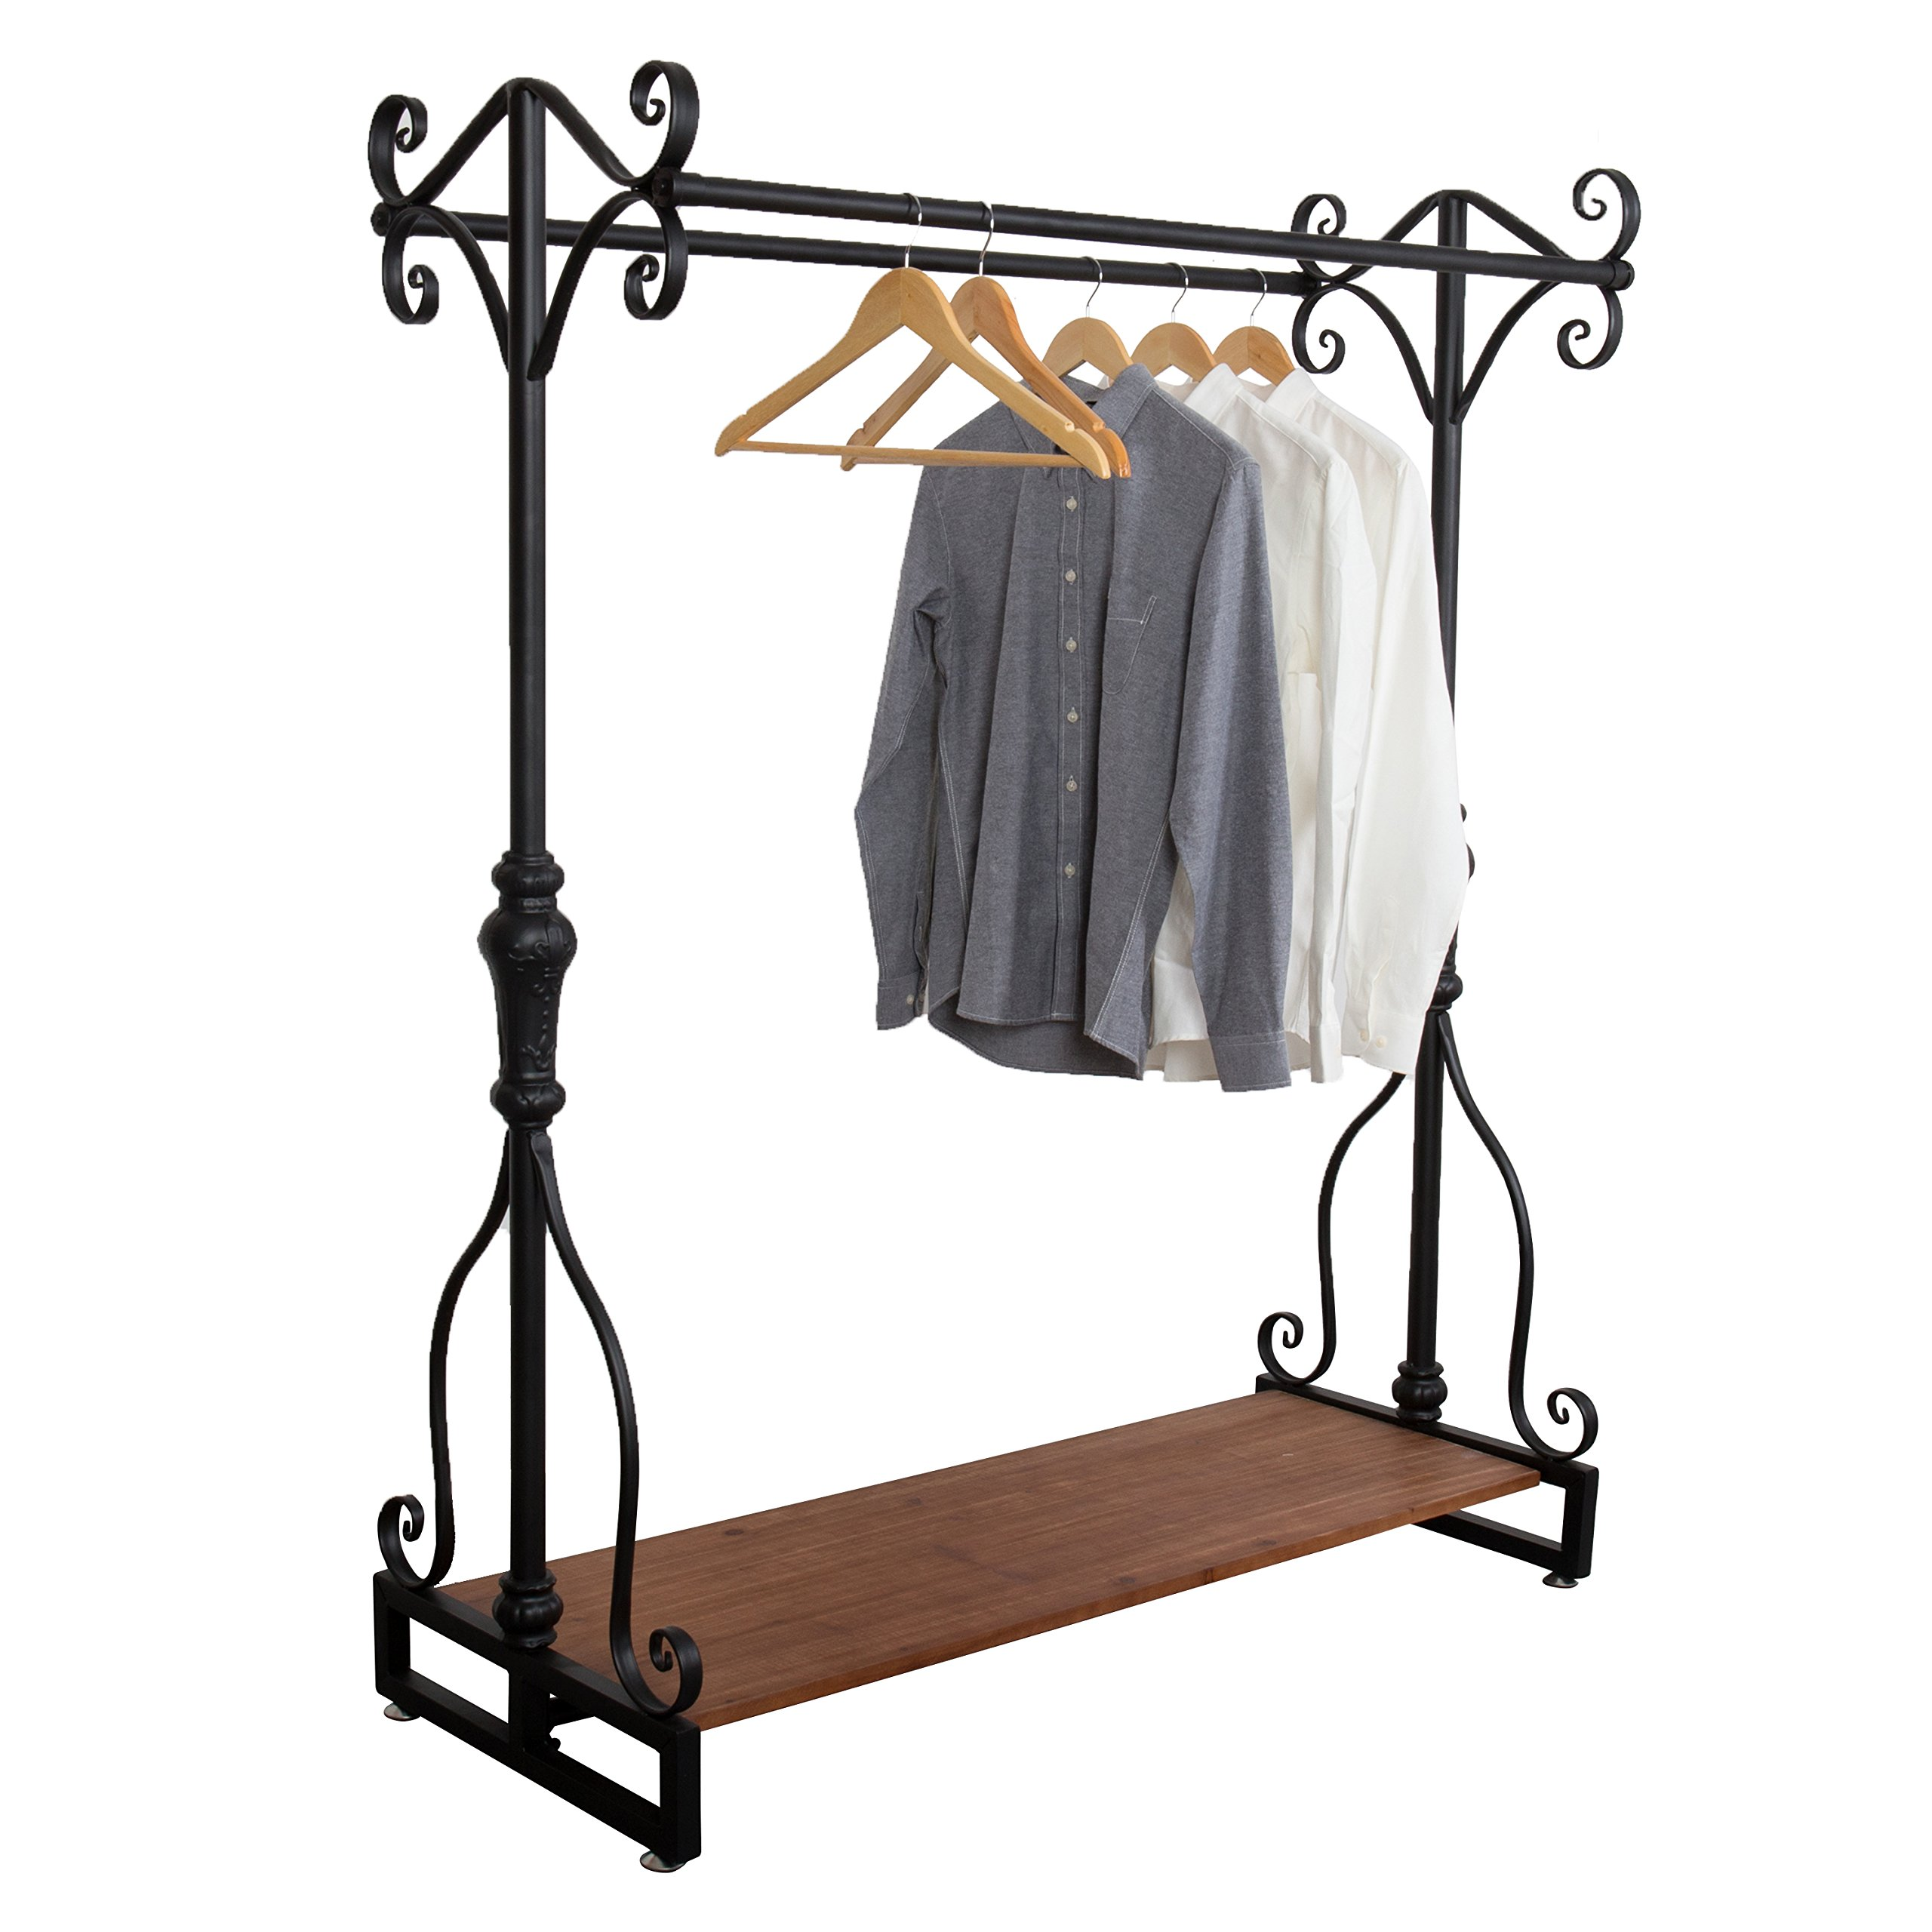 Victorian Style Metal Boutique Dual Hangrail Garment Clothing Rack with Wood Cargo Storage Shelf, Brown